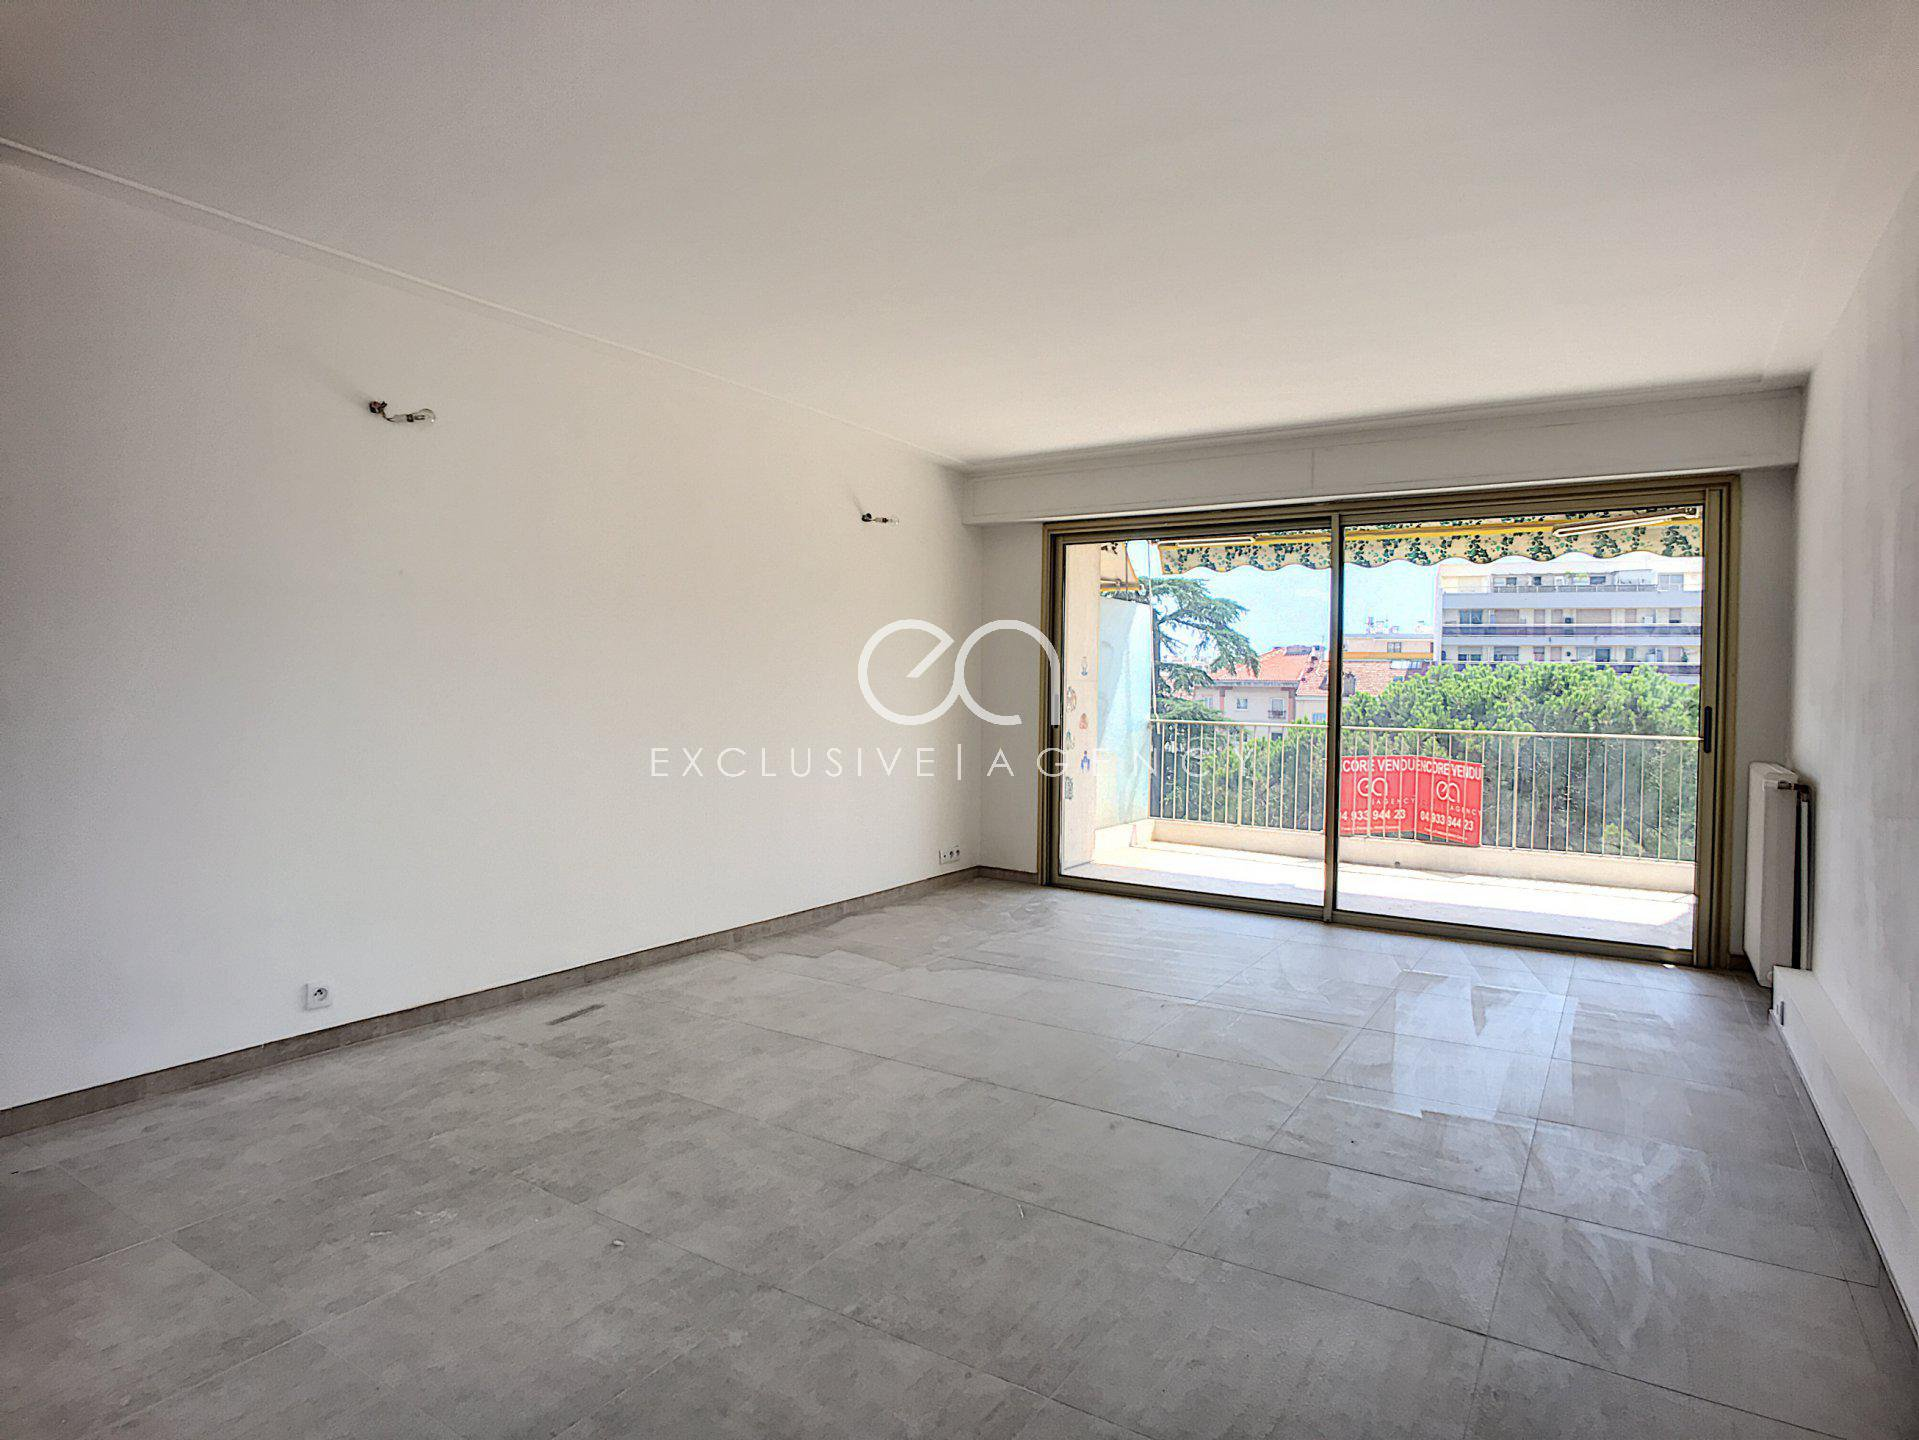 For sale Cannes Centre - 3 bedroom apartment of 96 sqm